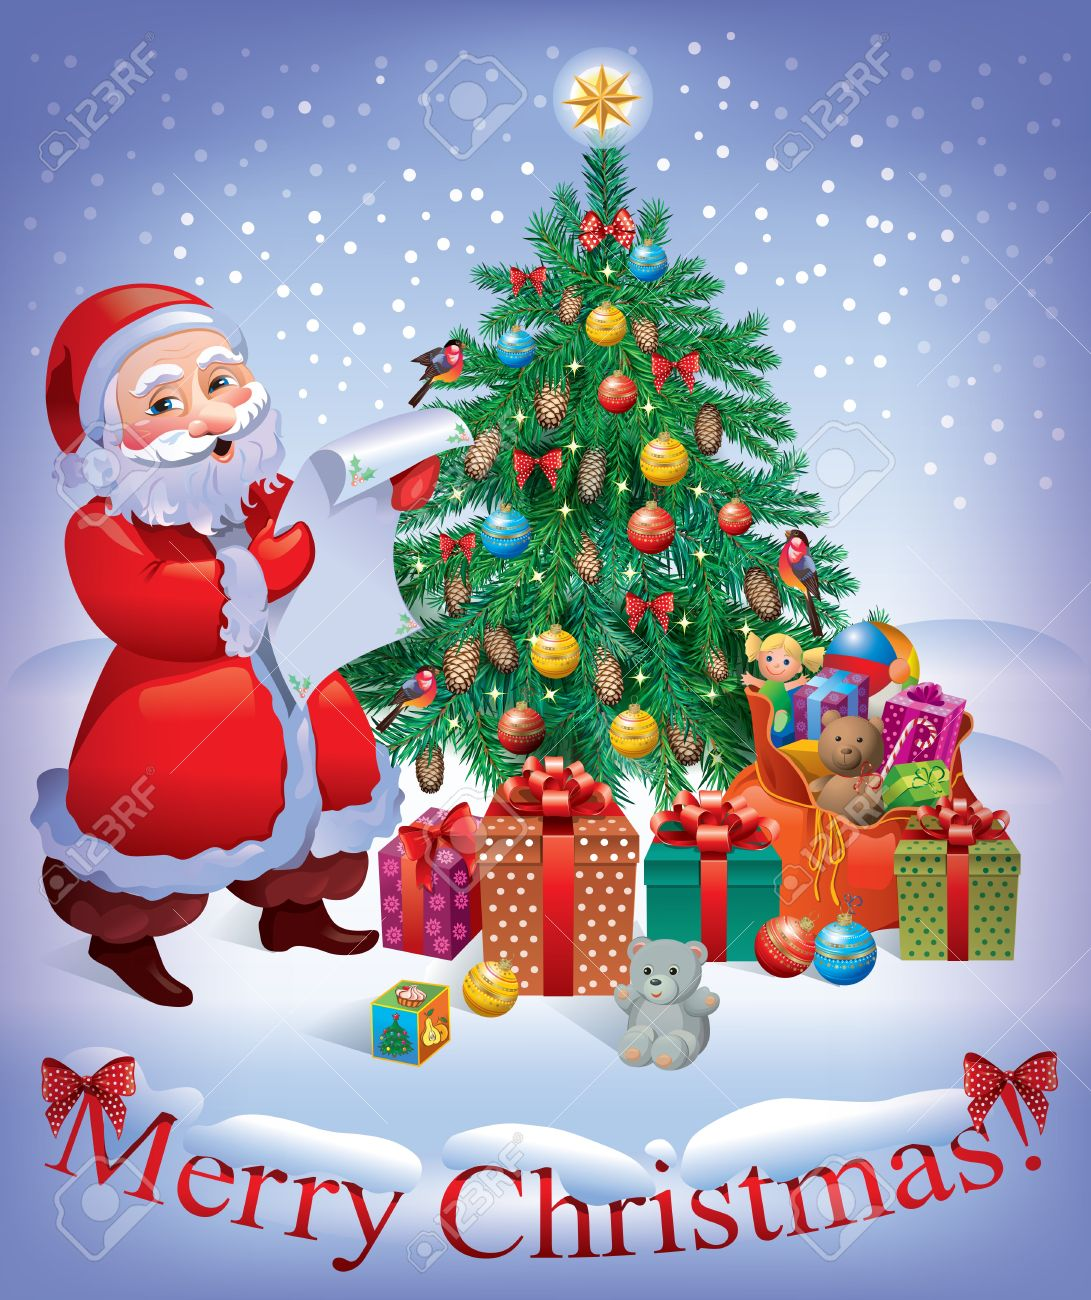 Merry Christmas Card With Santa And Christmas Tree Contains